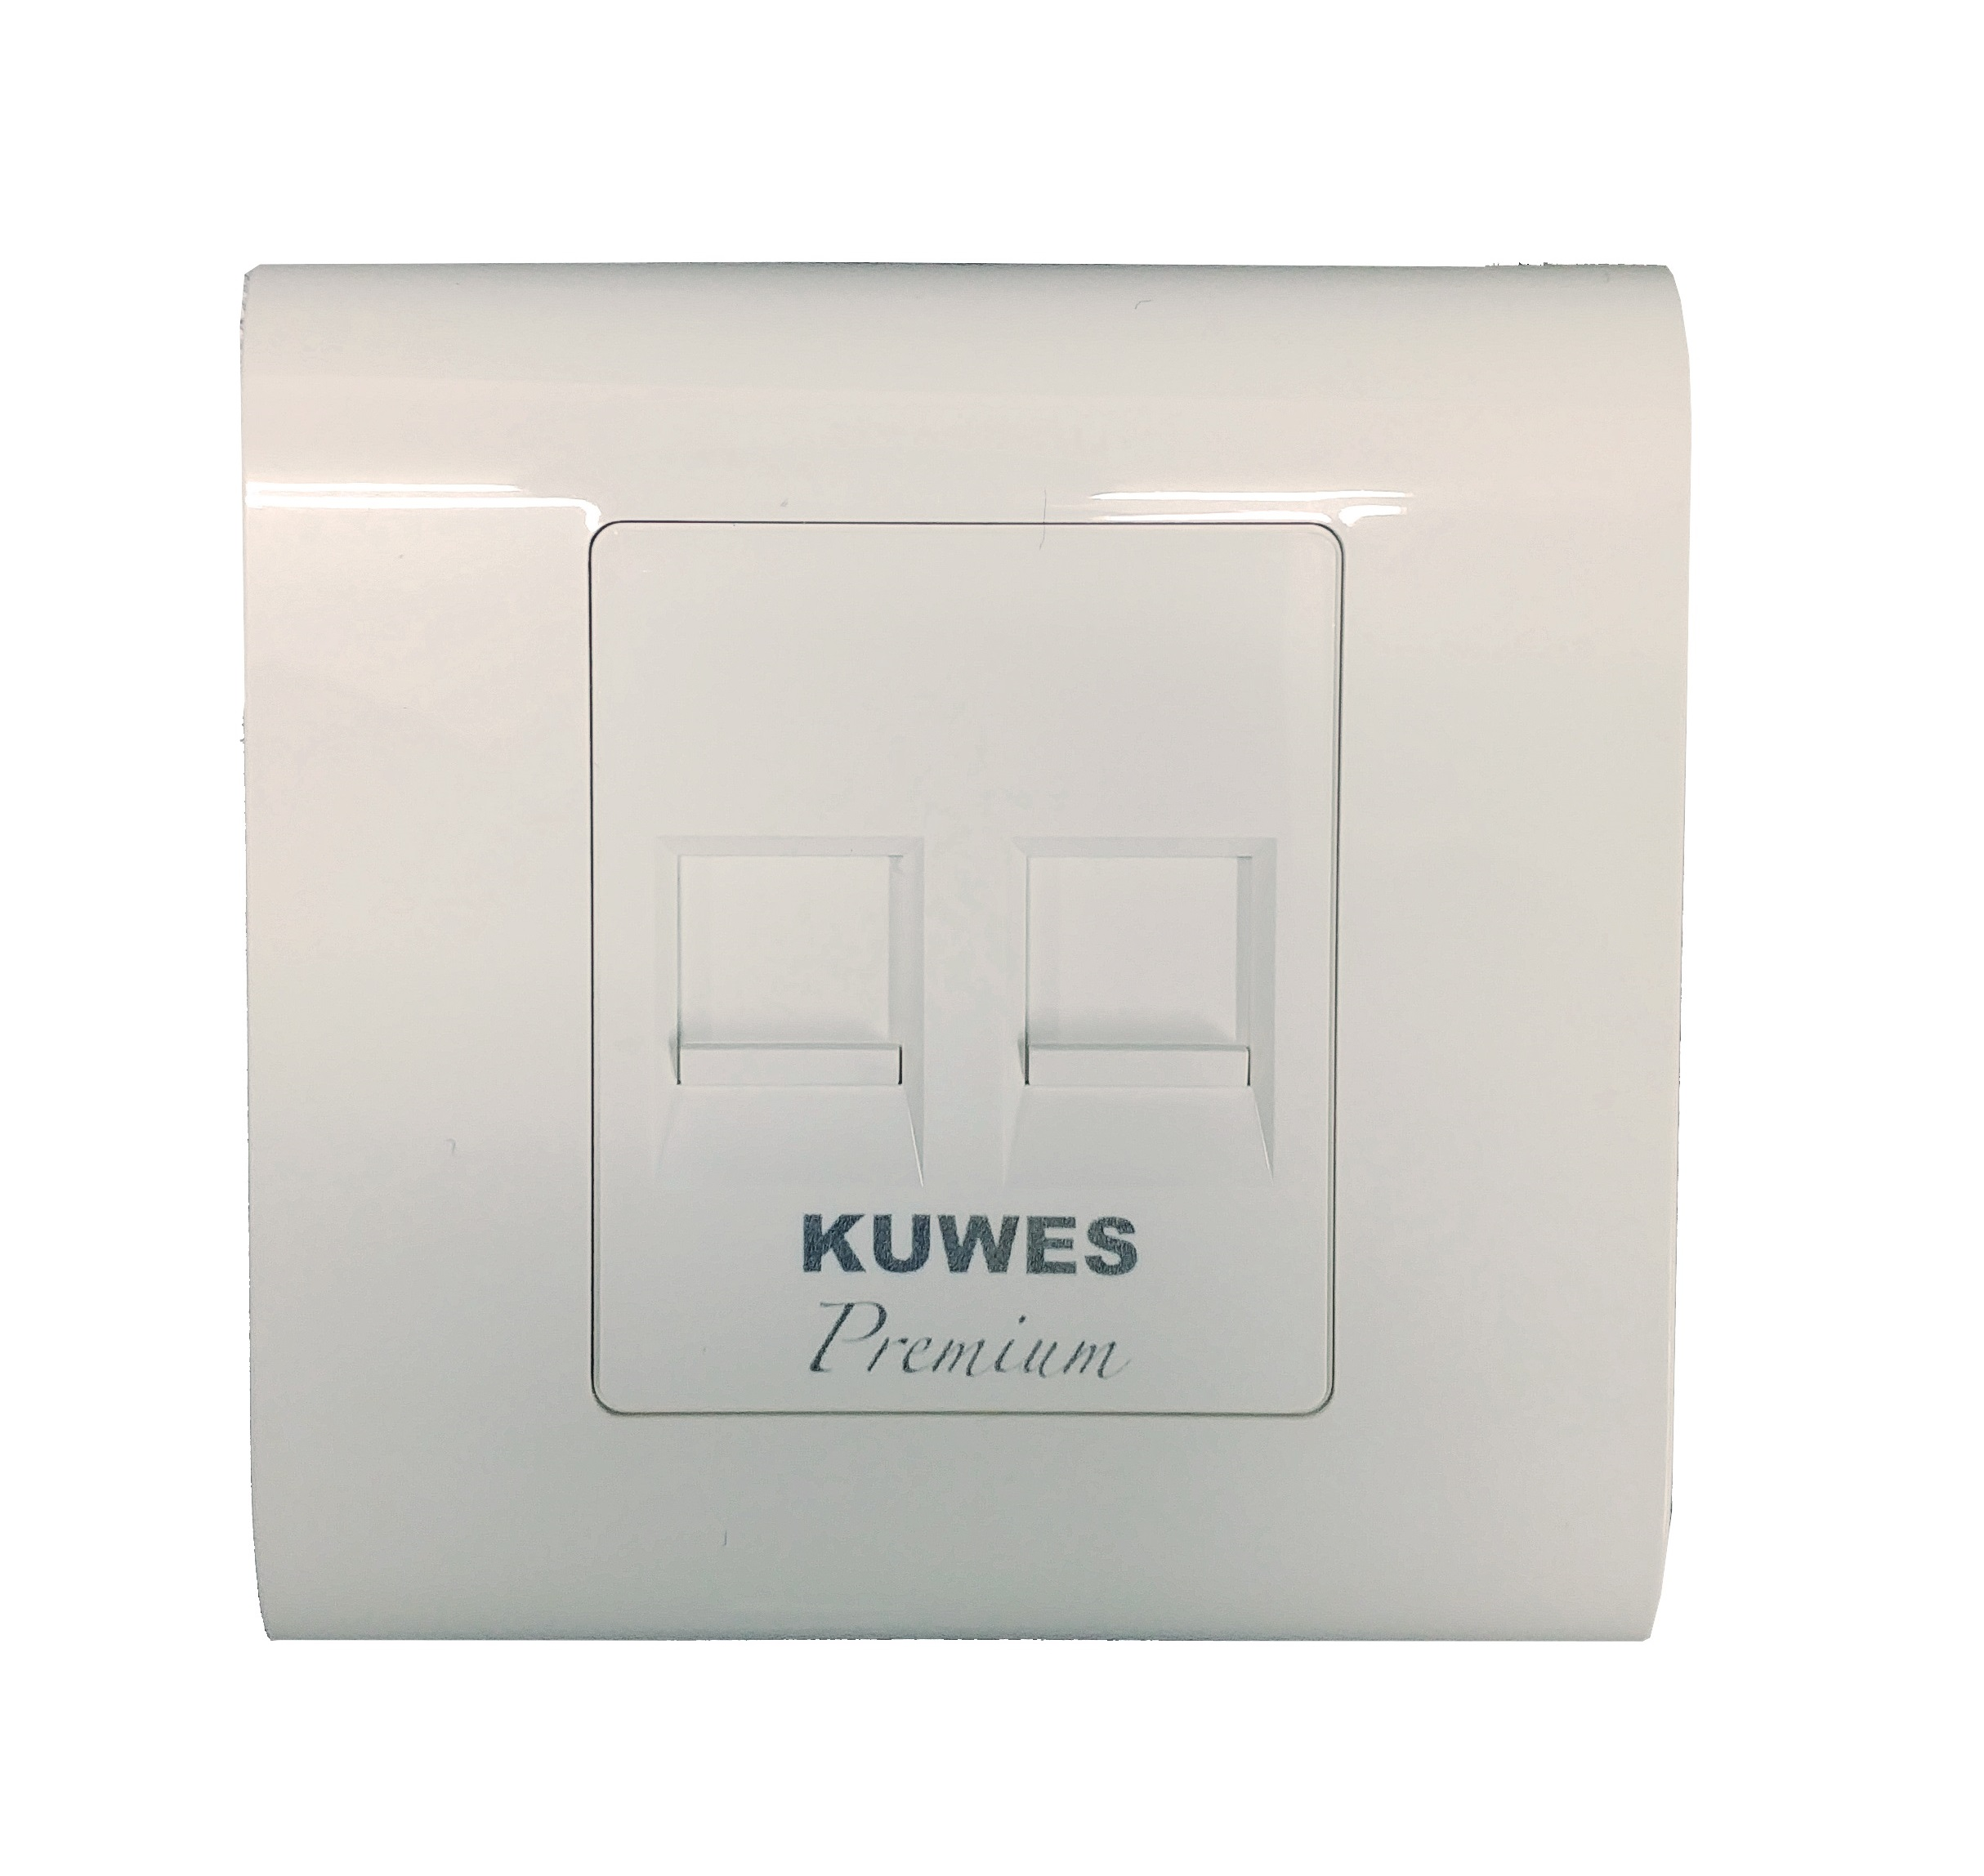 Kuwes Outlet Double Faceplate UK 86x86mm